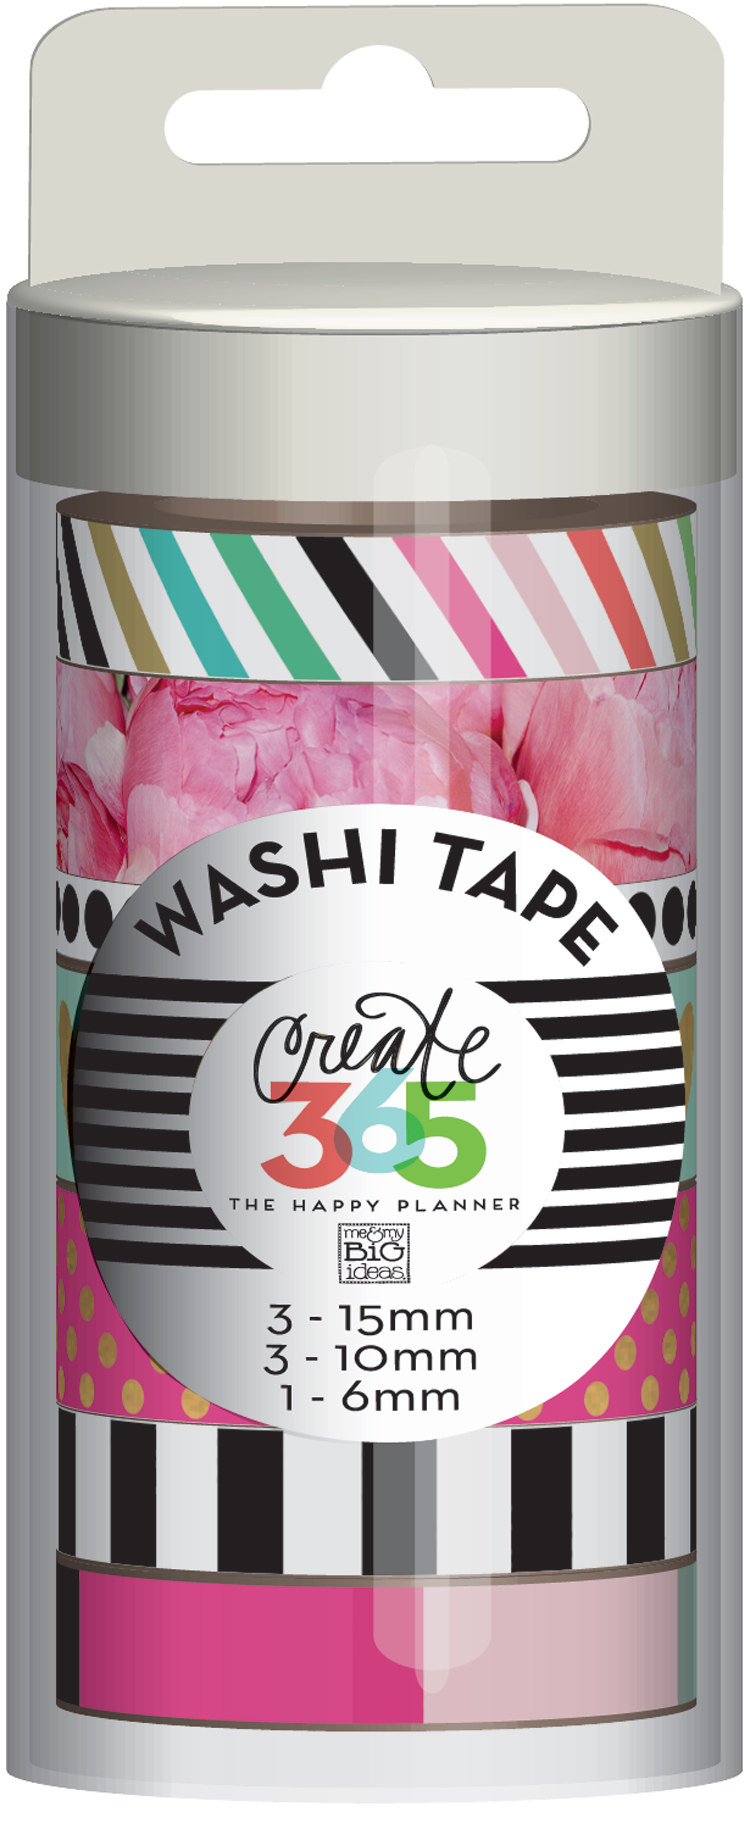 'Peony' washi tape tube for The Happy Planner™   me & my BIG ideas.jpg